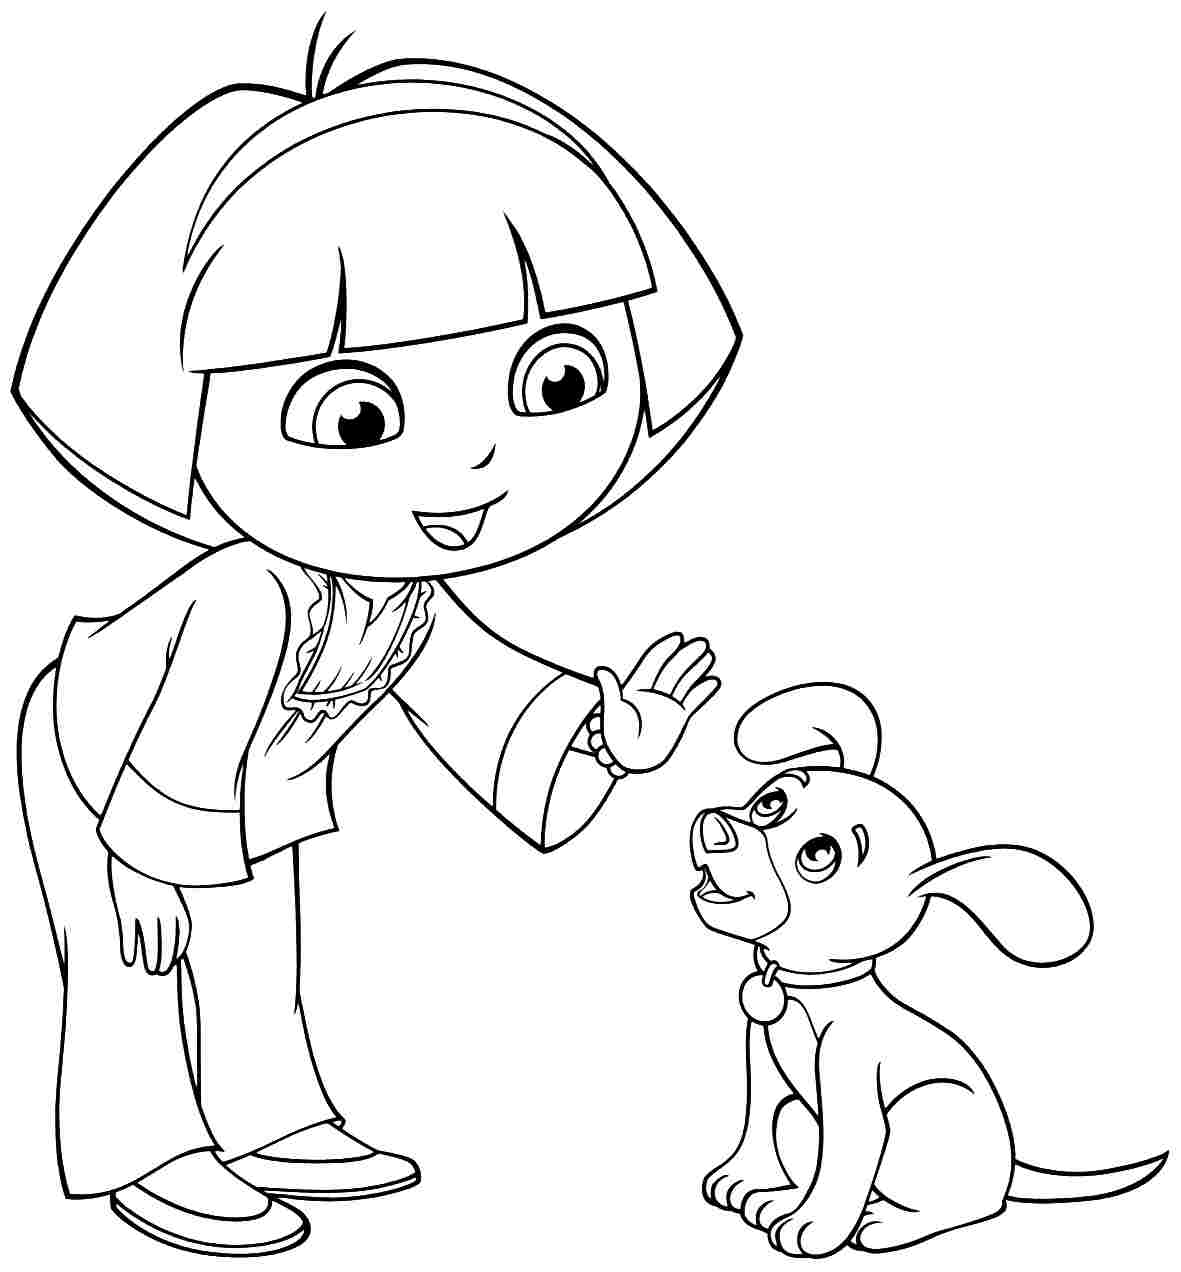 coloring pages dora and friends | Image - Cartoon-dora-the-explorer-and-friends-coloring ...